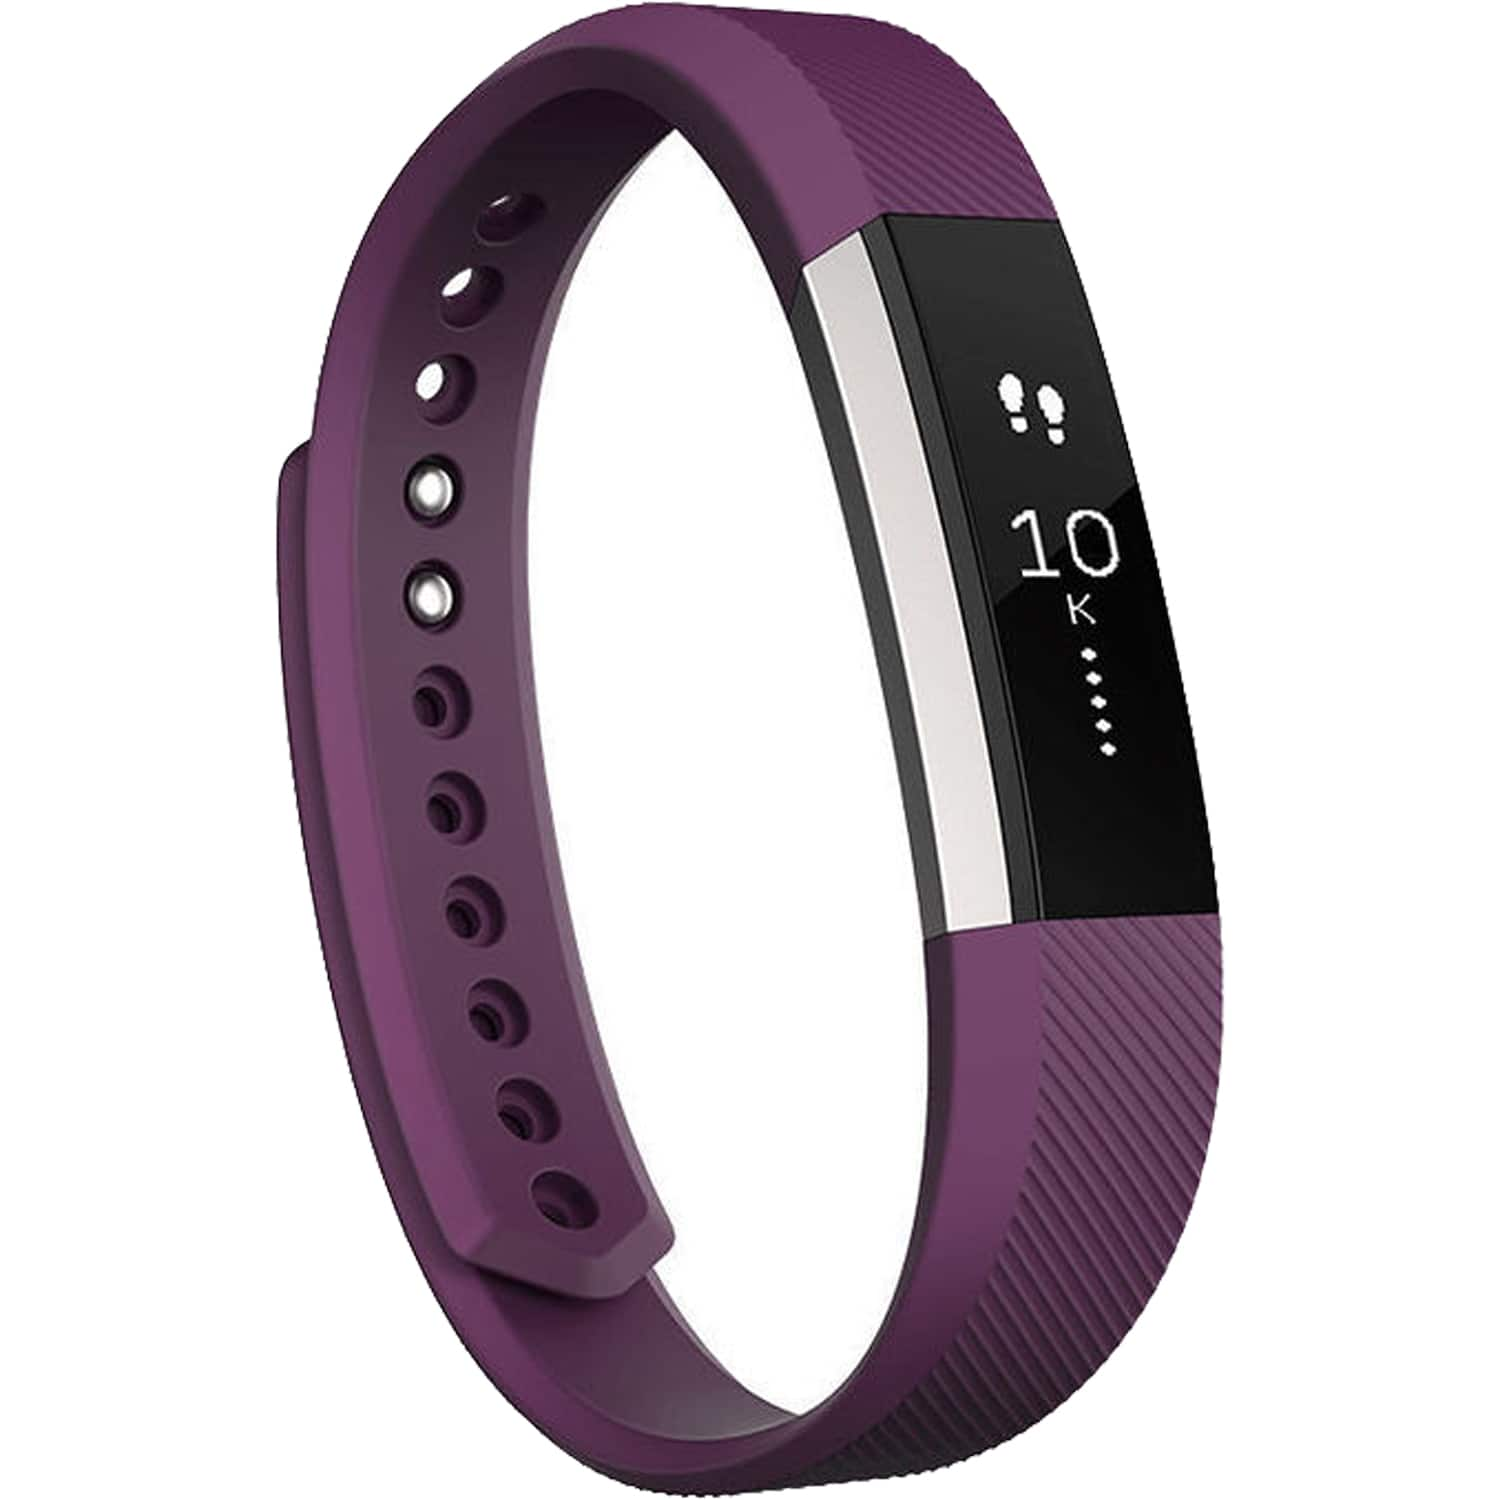 Fitbit Alta Activity Fitness Tracker - Plum & Black - $57.95 + Free Shipping